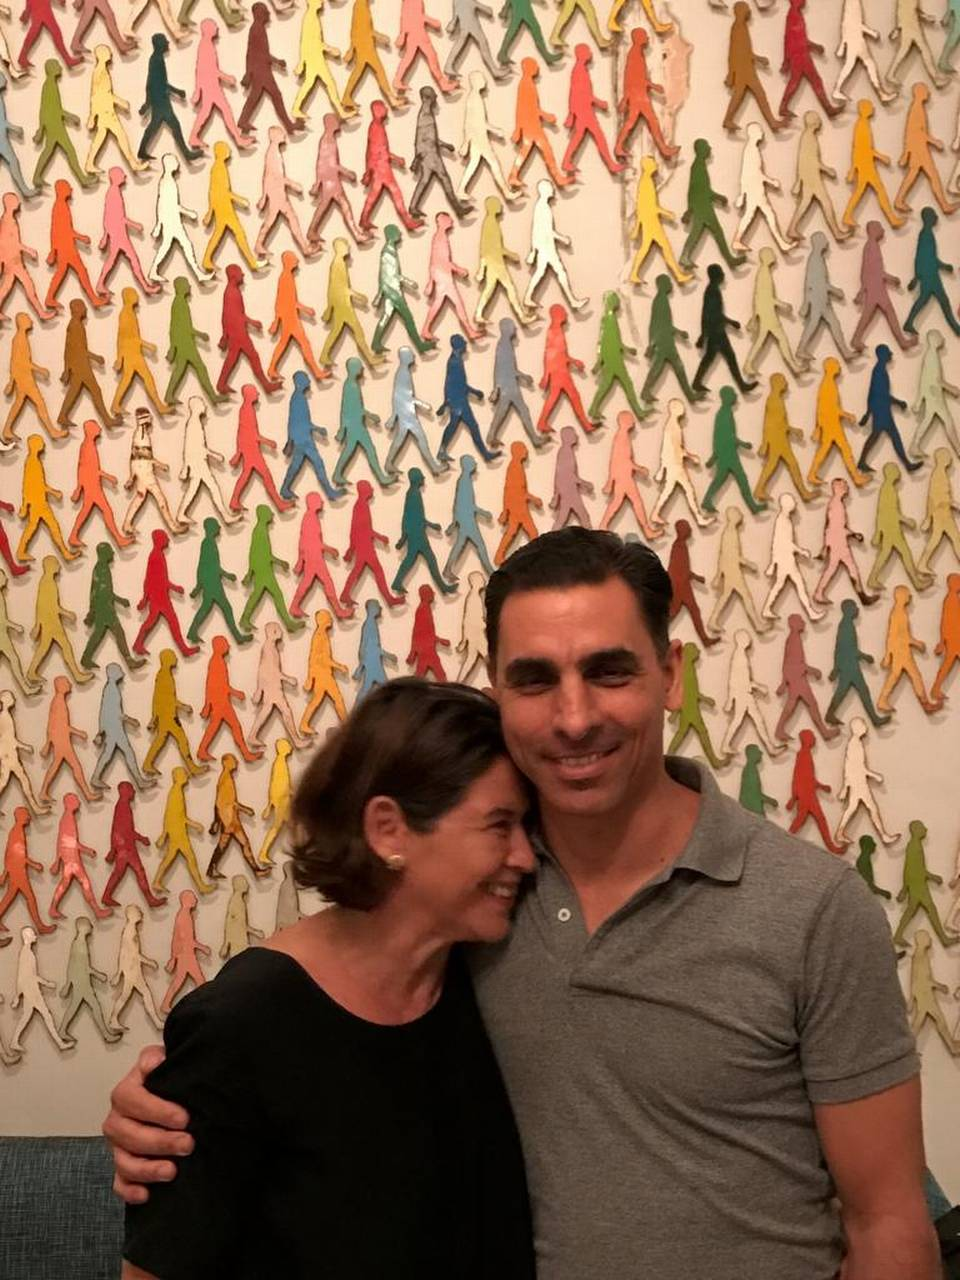 """Internationally known Cuban artist Damian Aquiles and his American wife, Pamela Ruiz, stand in front of his """"Walking Men"""" work, which was also commissioned by the Council on Foreign Relations office in Washington, D.C. Evolving political change in Cuba is giving artists and budding entrepreneurs a glimpse at new opportunities. - Markos Kounalakis"""